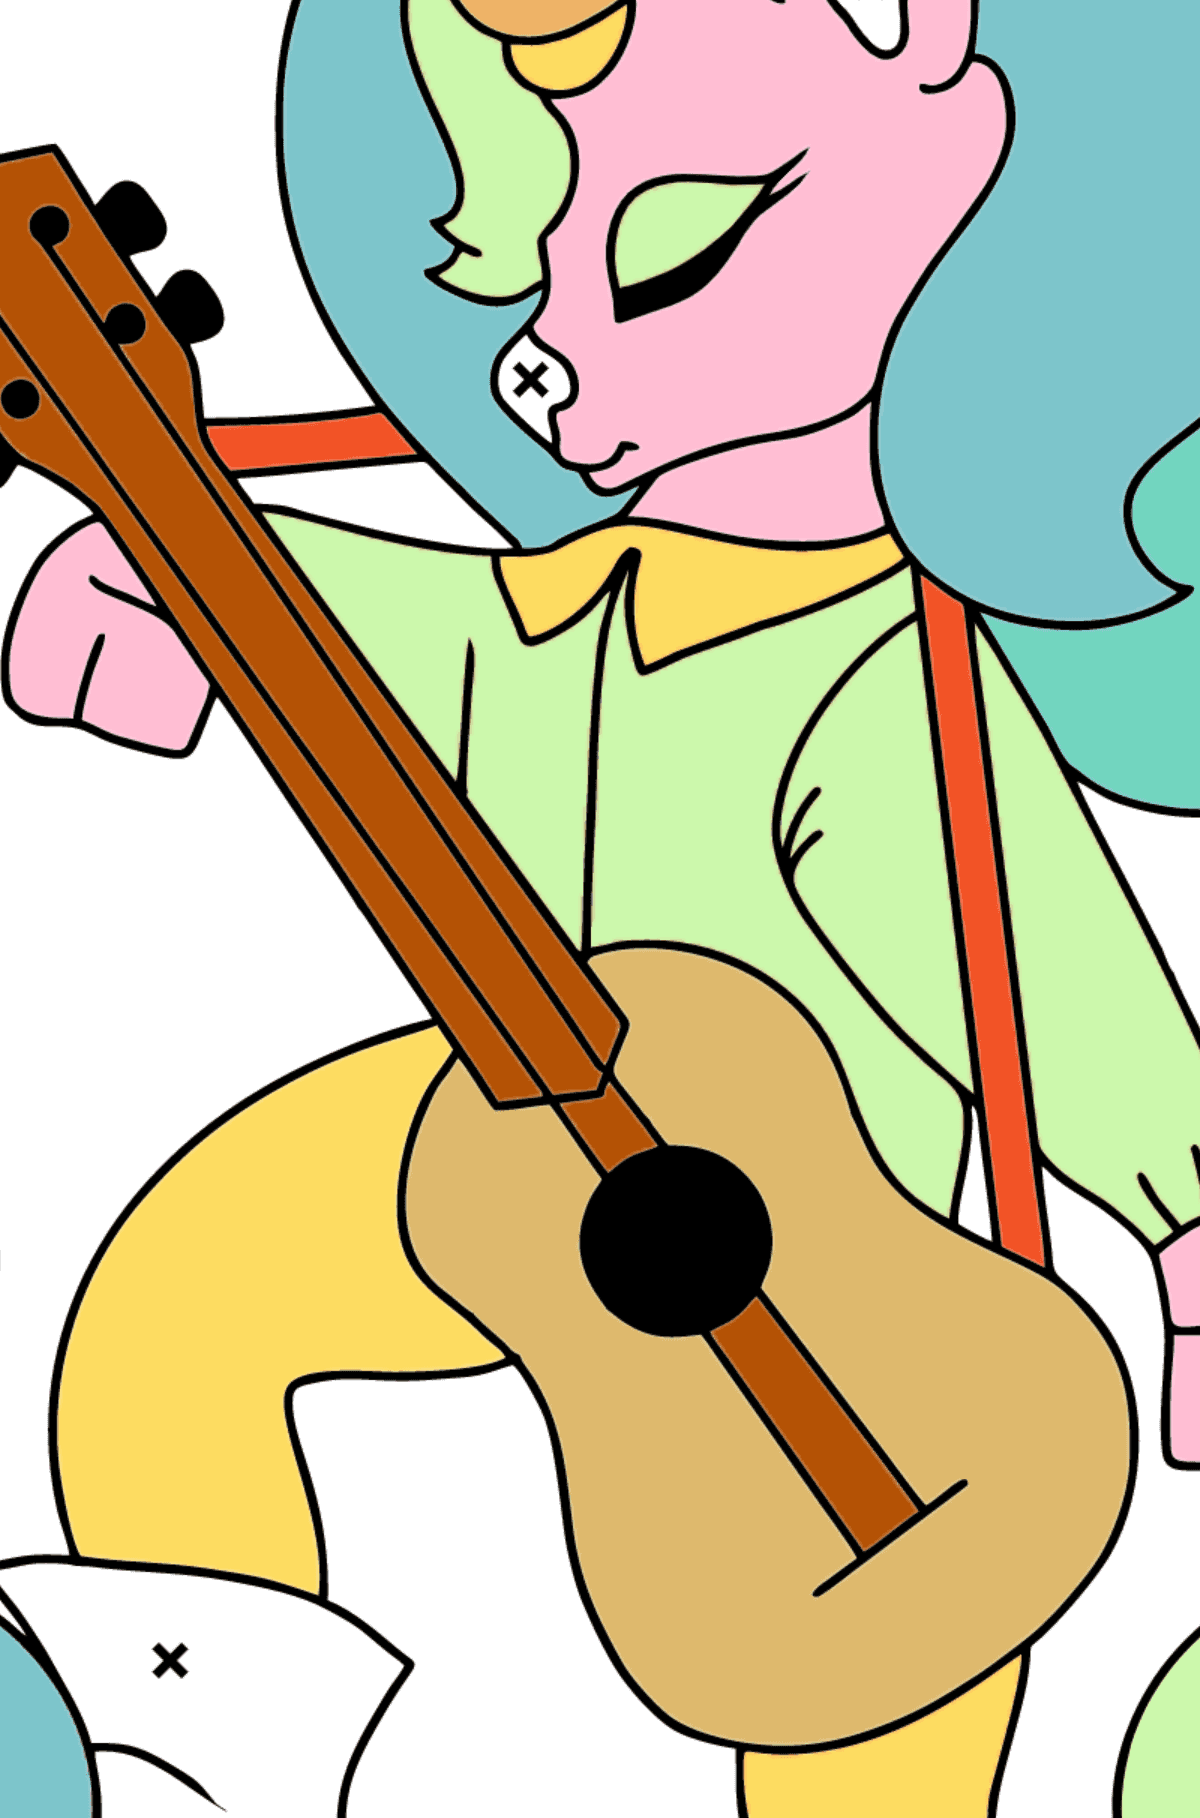 Coloring Page - A Unicorn with a Guitar - Coloring by Symbols for Children